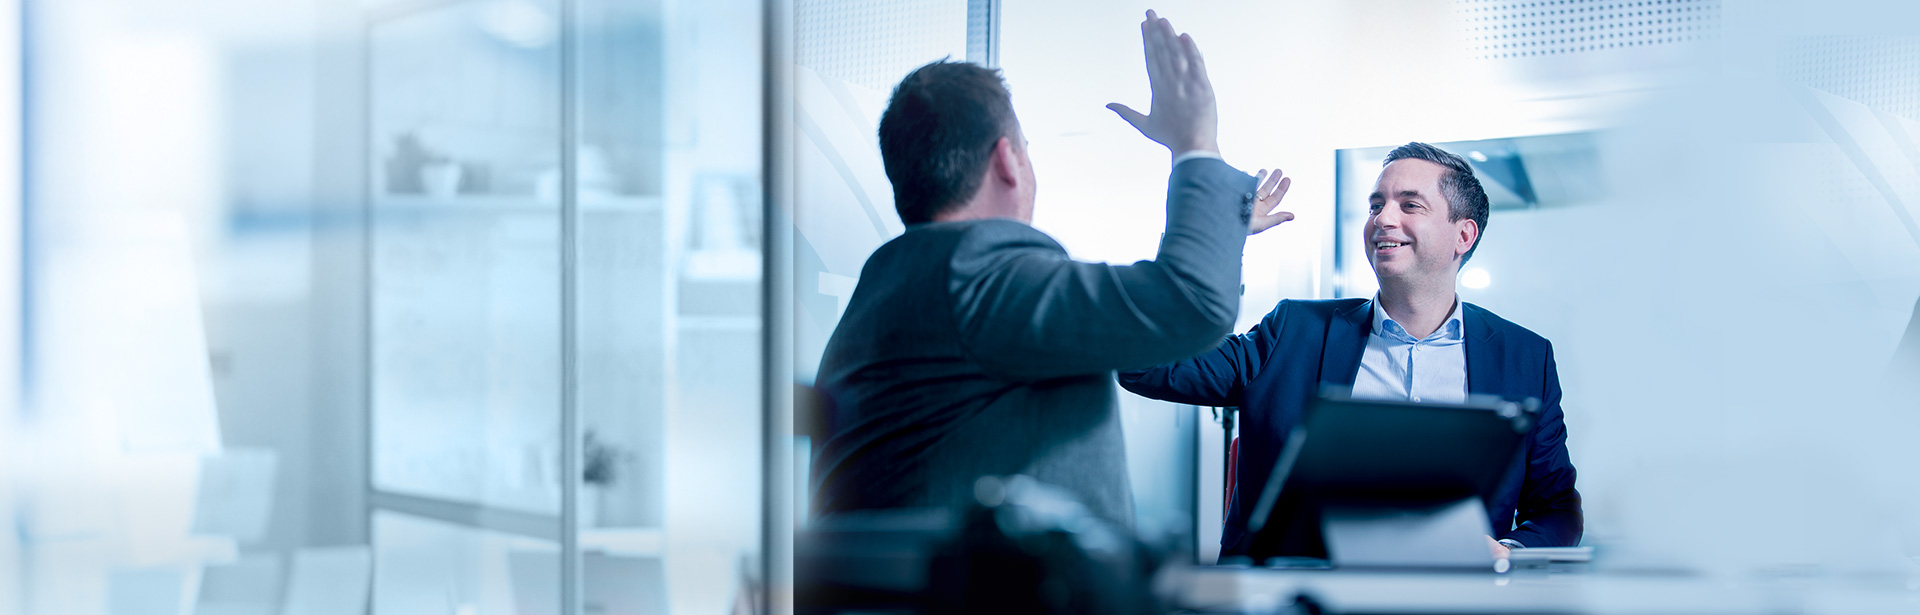 Two-men-high-five-at-office-partners-1920x615